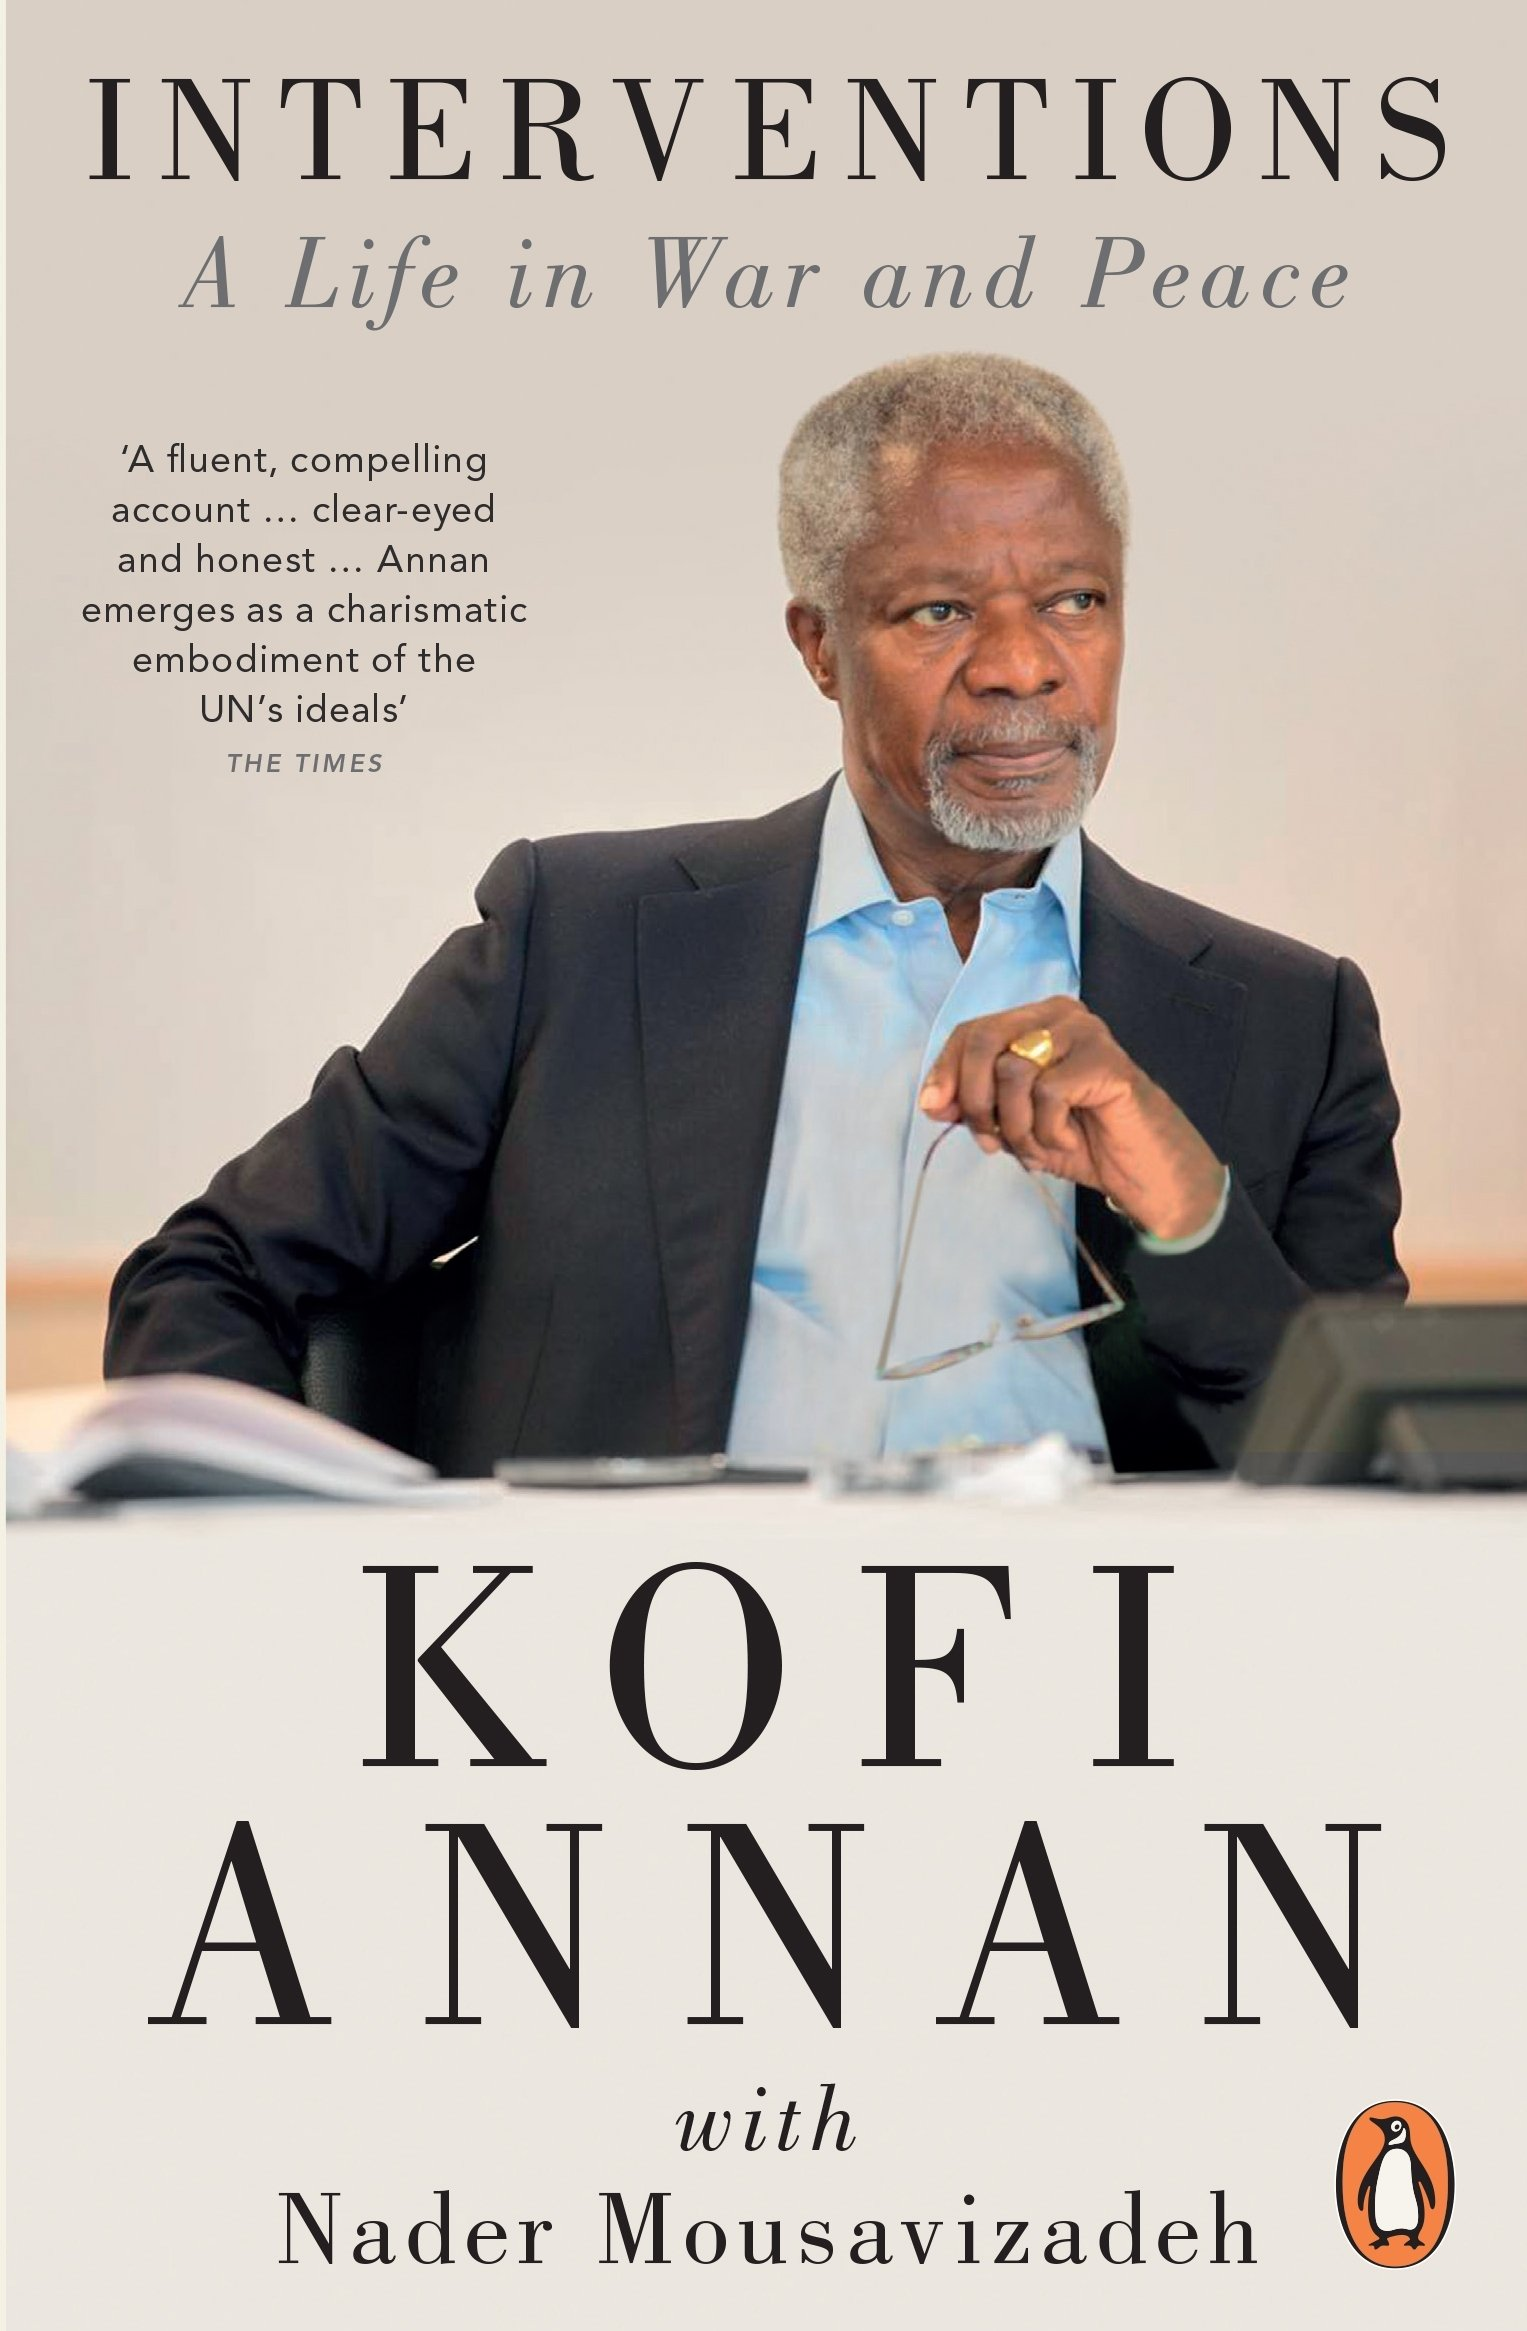 Image result for kofi annan interventions